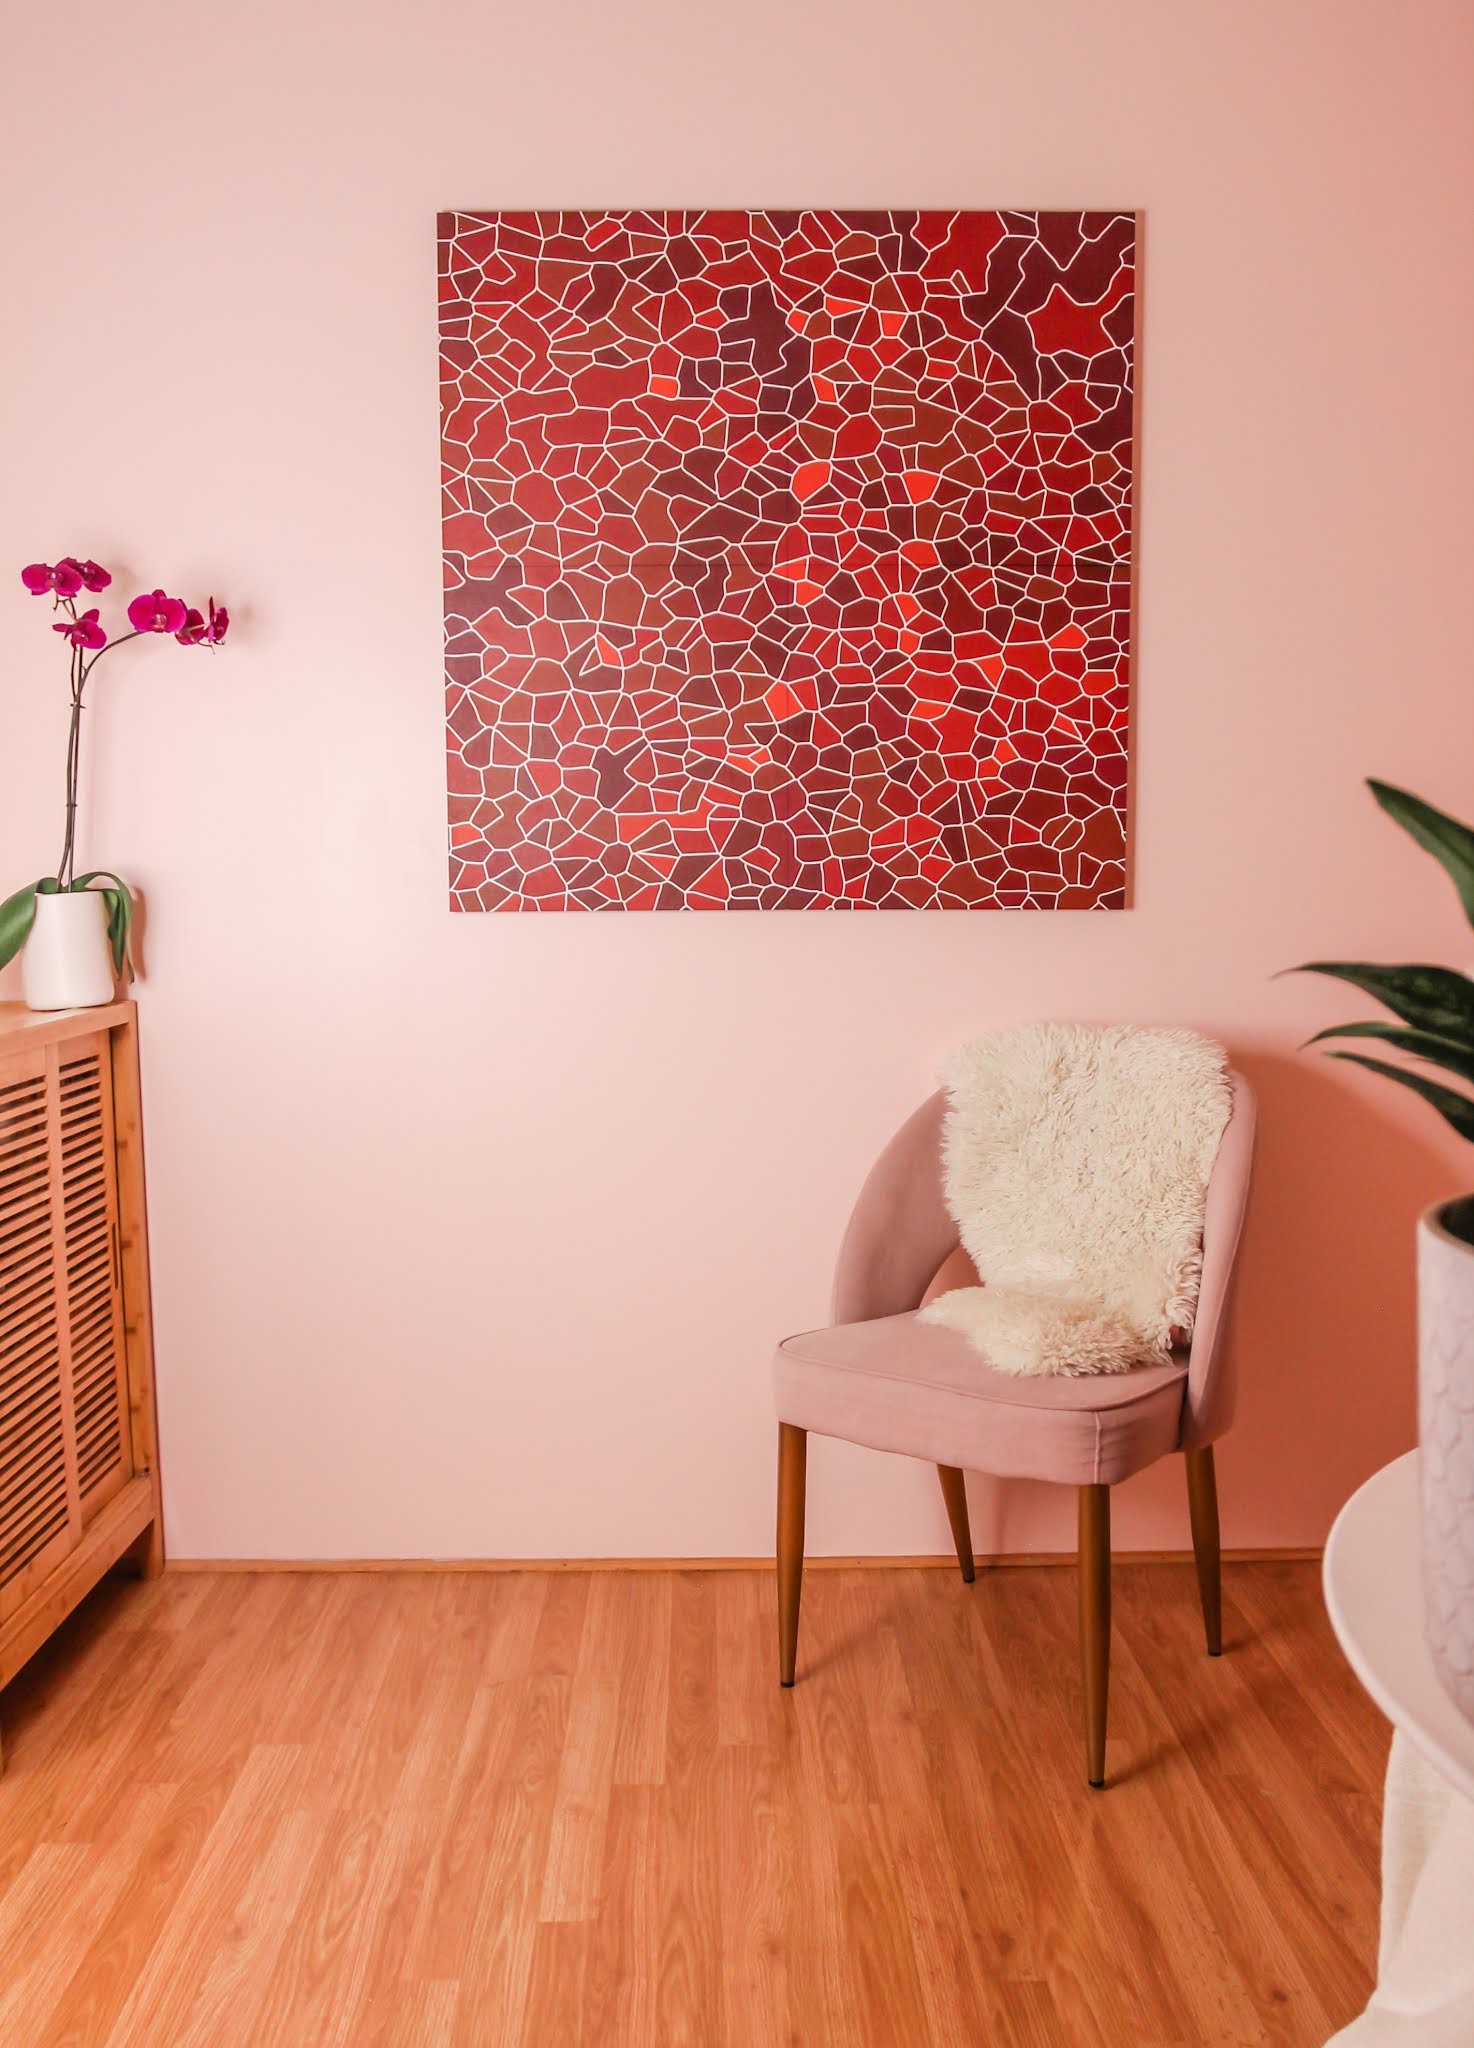 pink and orange decor // spacekit // spacekit decor // sustainable wall art // sustainable home decor // pink and orange room // colorful homes // pink walls // unique wall art // eco friendly wall art // modular wall art // pink room // orange room // orange couch // pink walls // NYC homes // home decor Inspo // office decor inspo // living room inspo // colorful home inspo